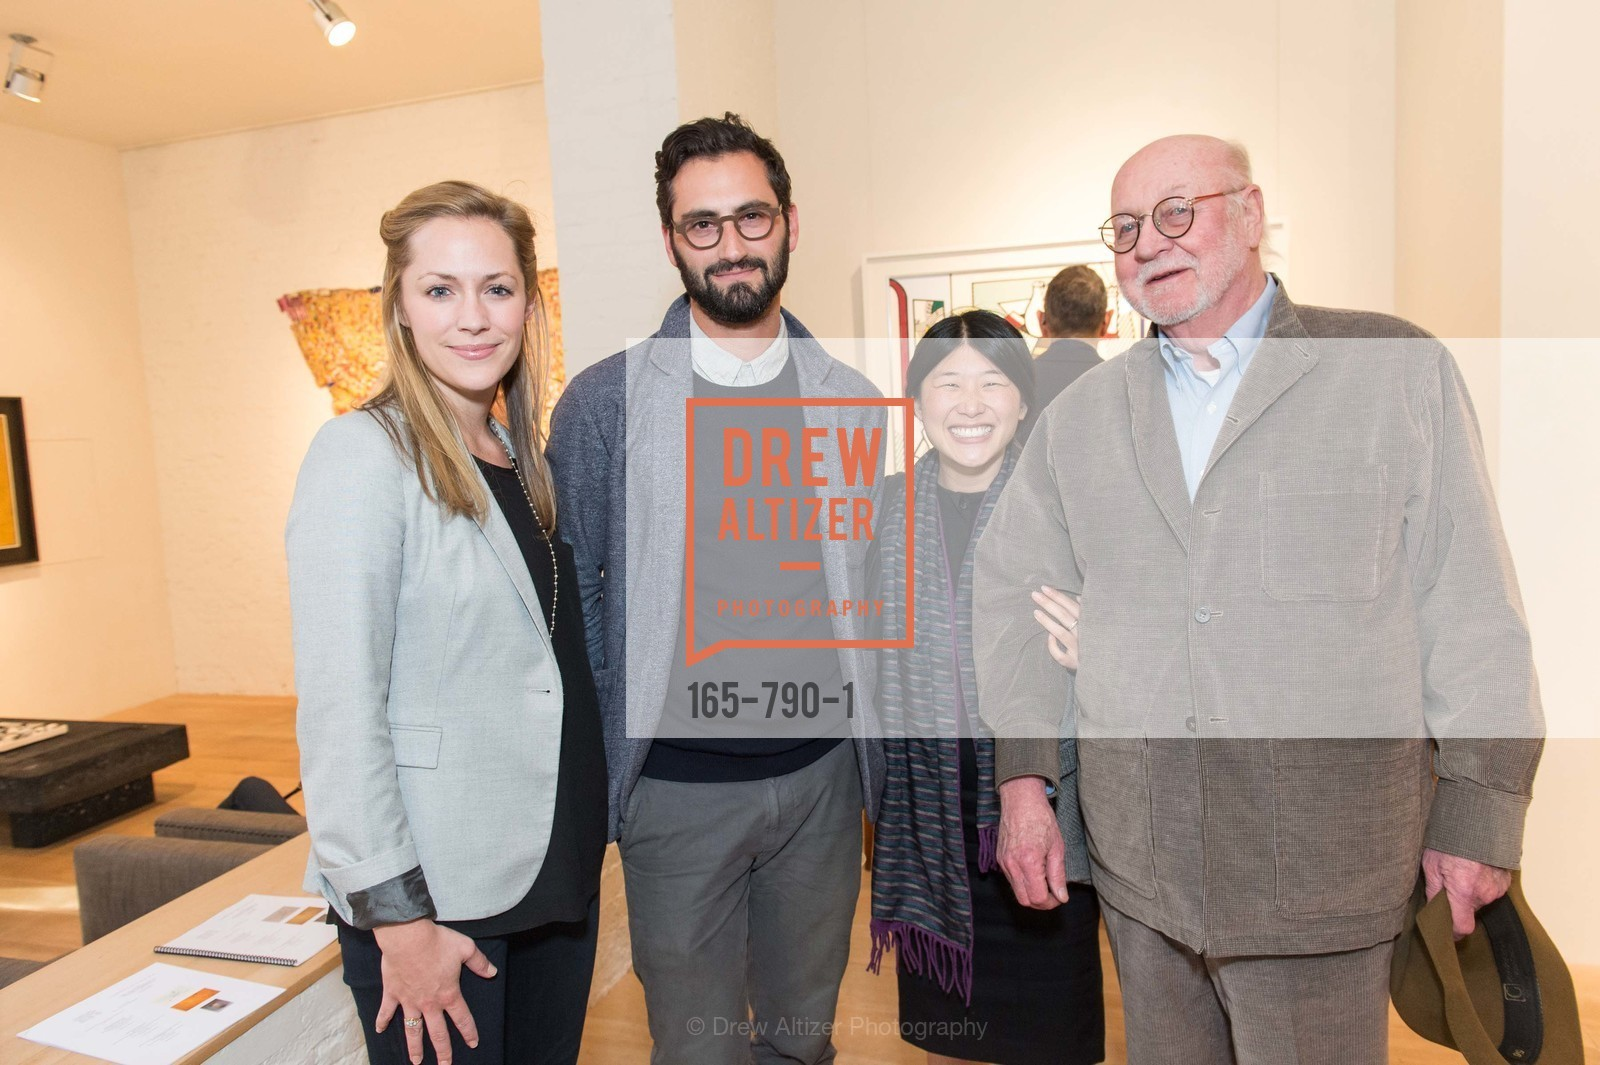 Liz Hurley, Joseph Becker, Micki Meng, Jack Wendler, Post War and Contemporary Preview at HEDGE GALLERY, US, April 15th, 2015,Drew Altizer, Drew Altizer Photography, full-service agency, private events, San Francisco photographer, photographer california